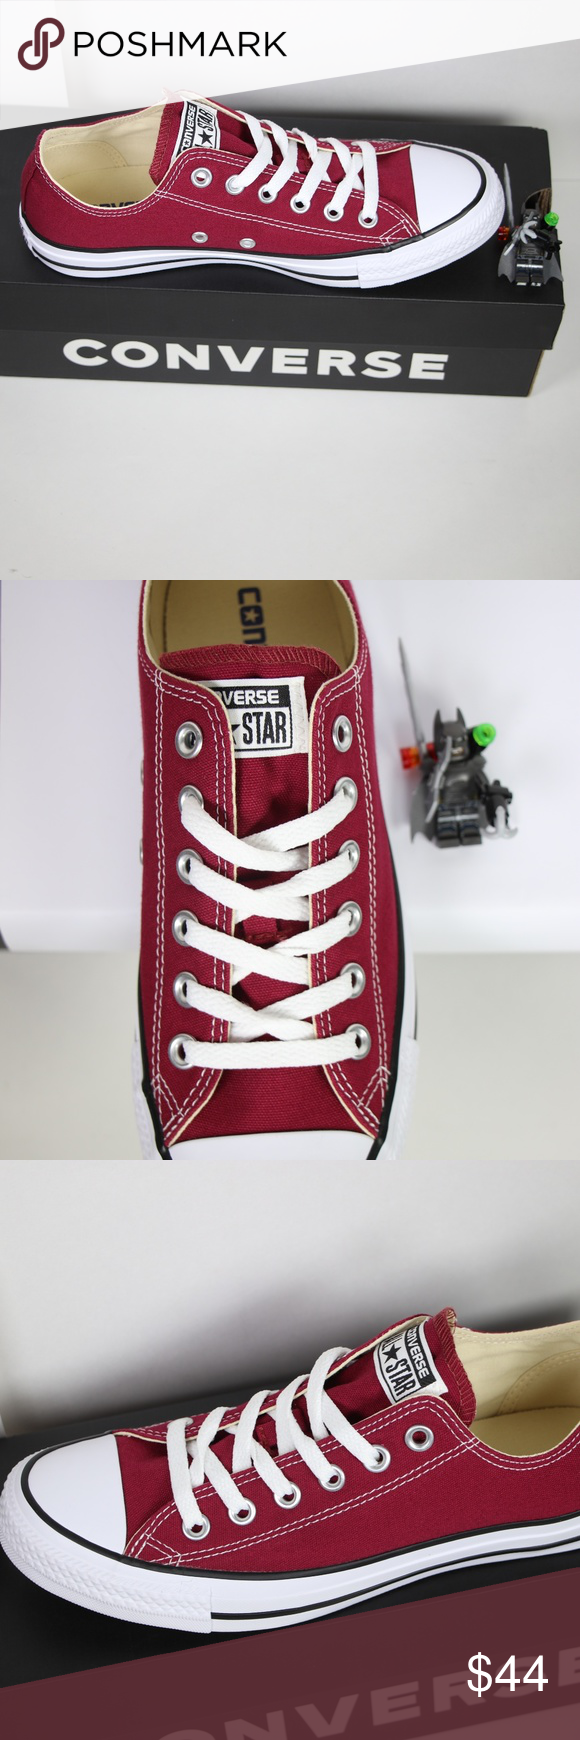 8064ec8e7ee8 Maroon Classic Converse All Star Low Top BRAND NEW in ORIGINAL BOX  100%  AUTHENTIC. Price is firm. More sizes available (listed below) in LOW TOPS    HIGH ...